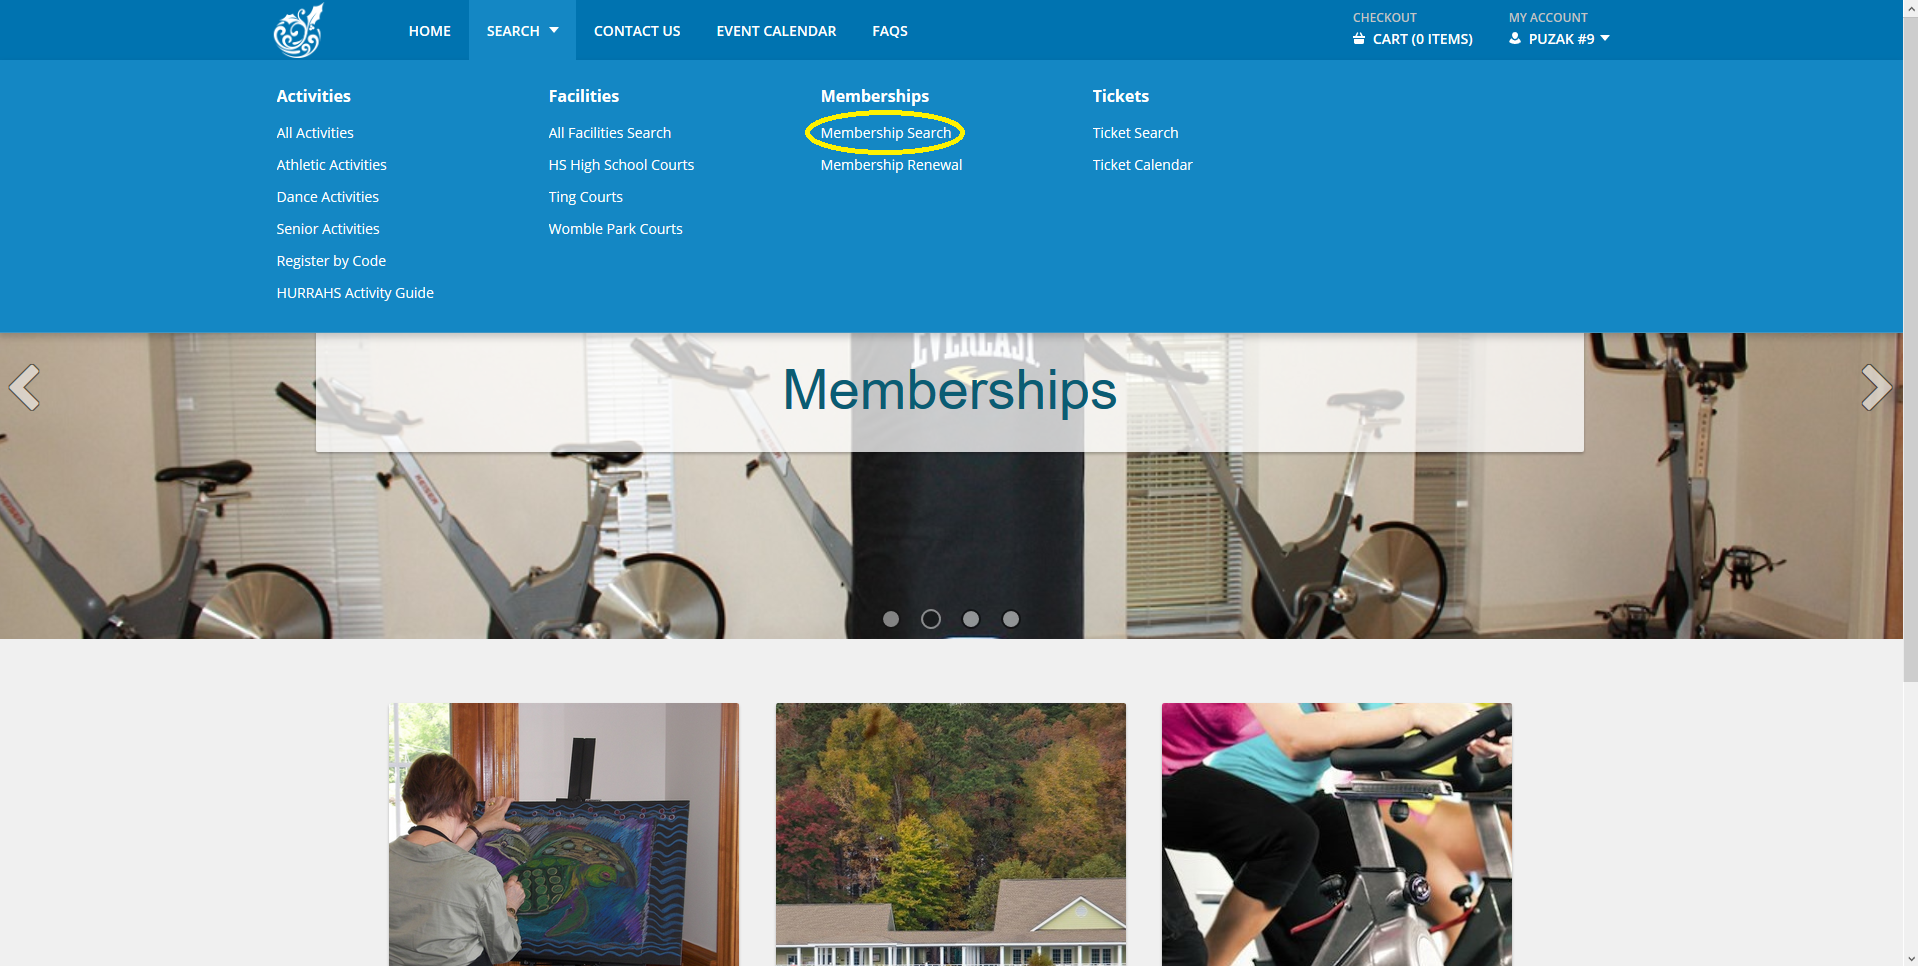 1. Fitness Membership Search